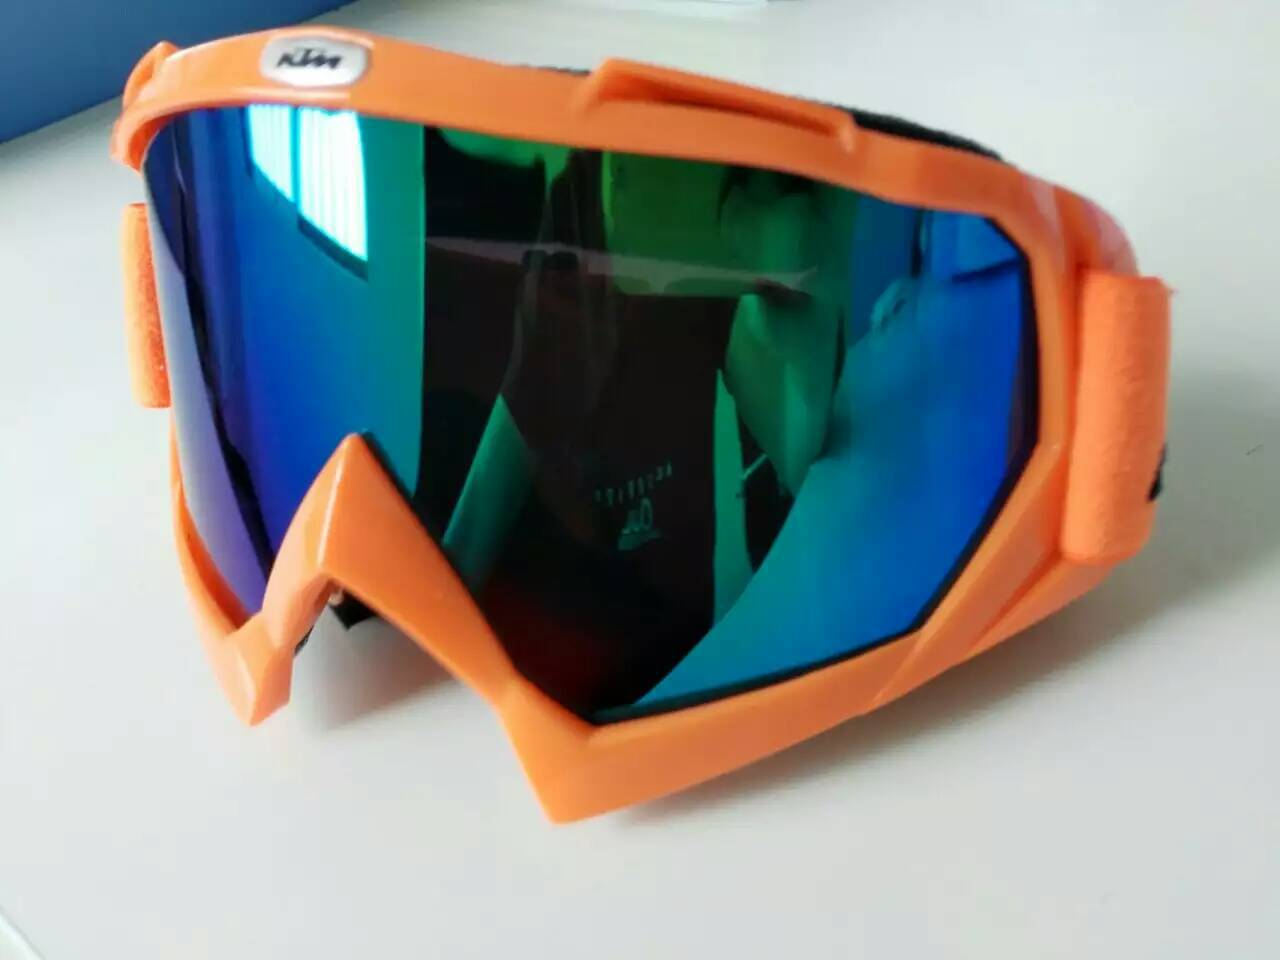 KTM Goggles For Motorcycle Off-road Helmet Goggles Windproof Ski Goggles Riding Dustproof Eye-protection Goggles